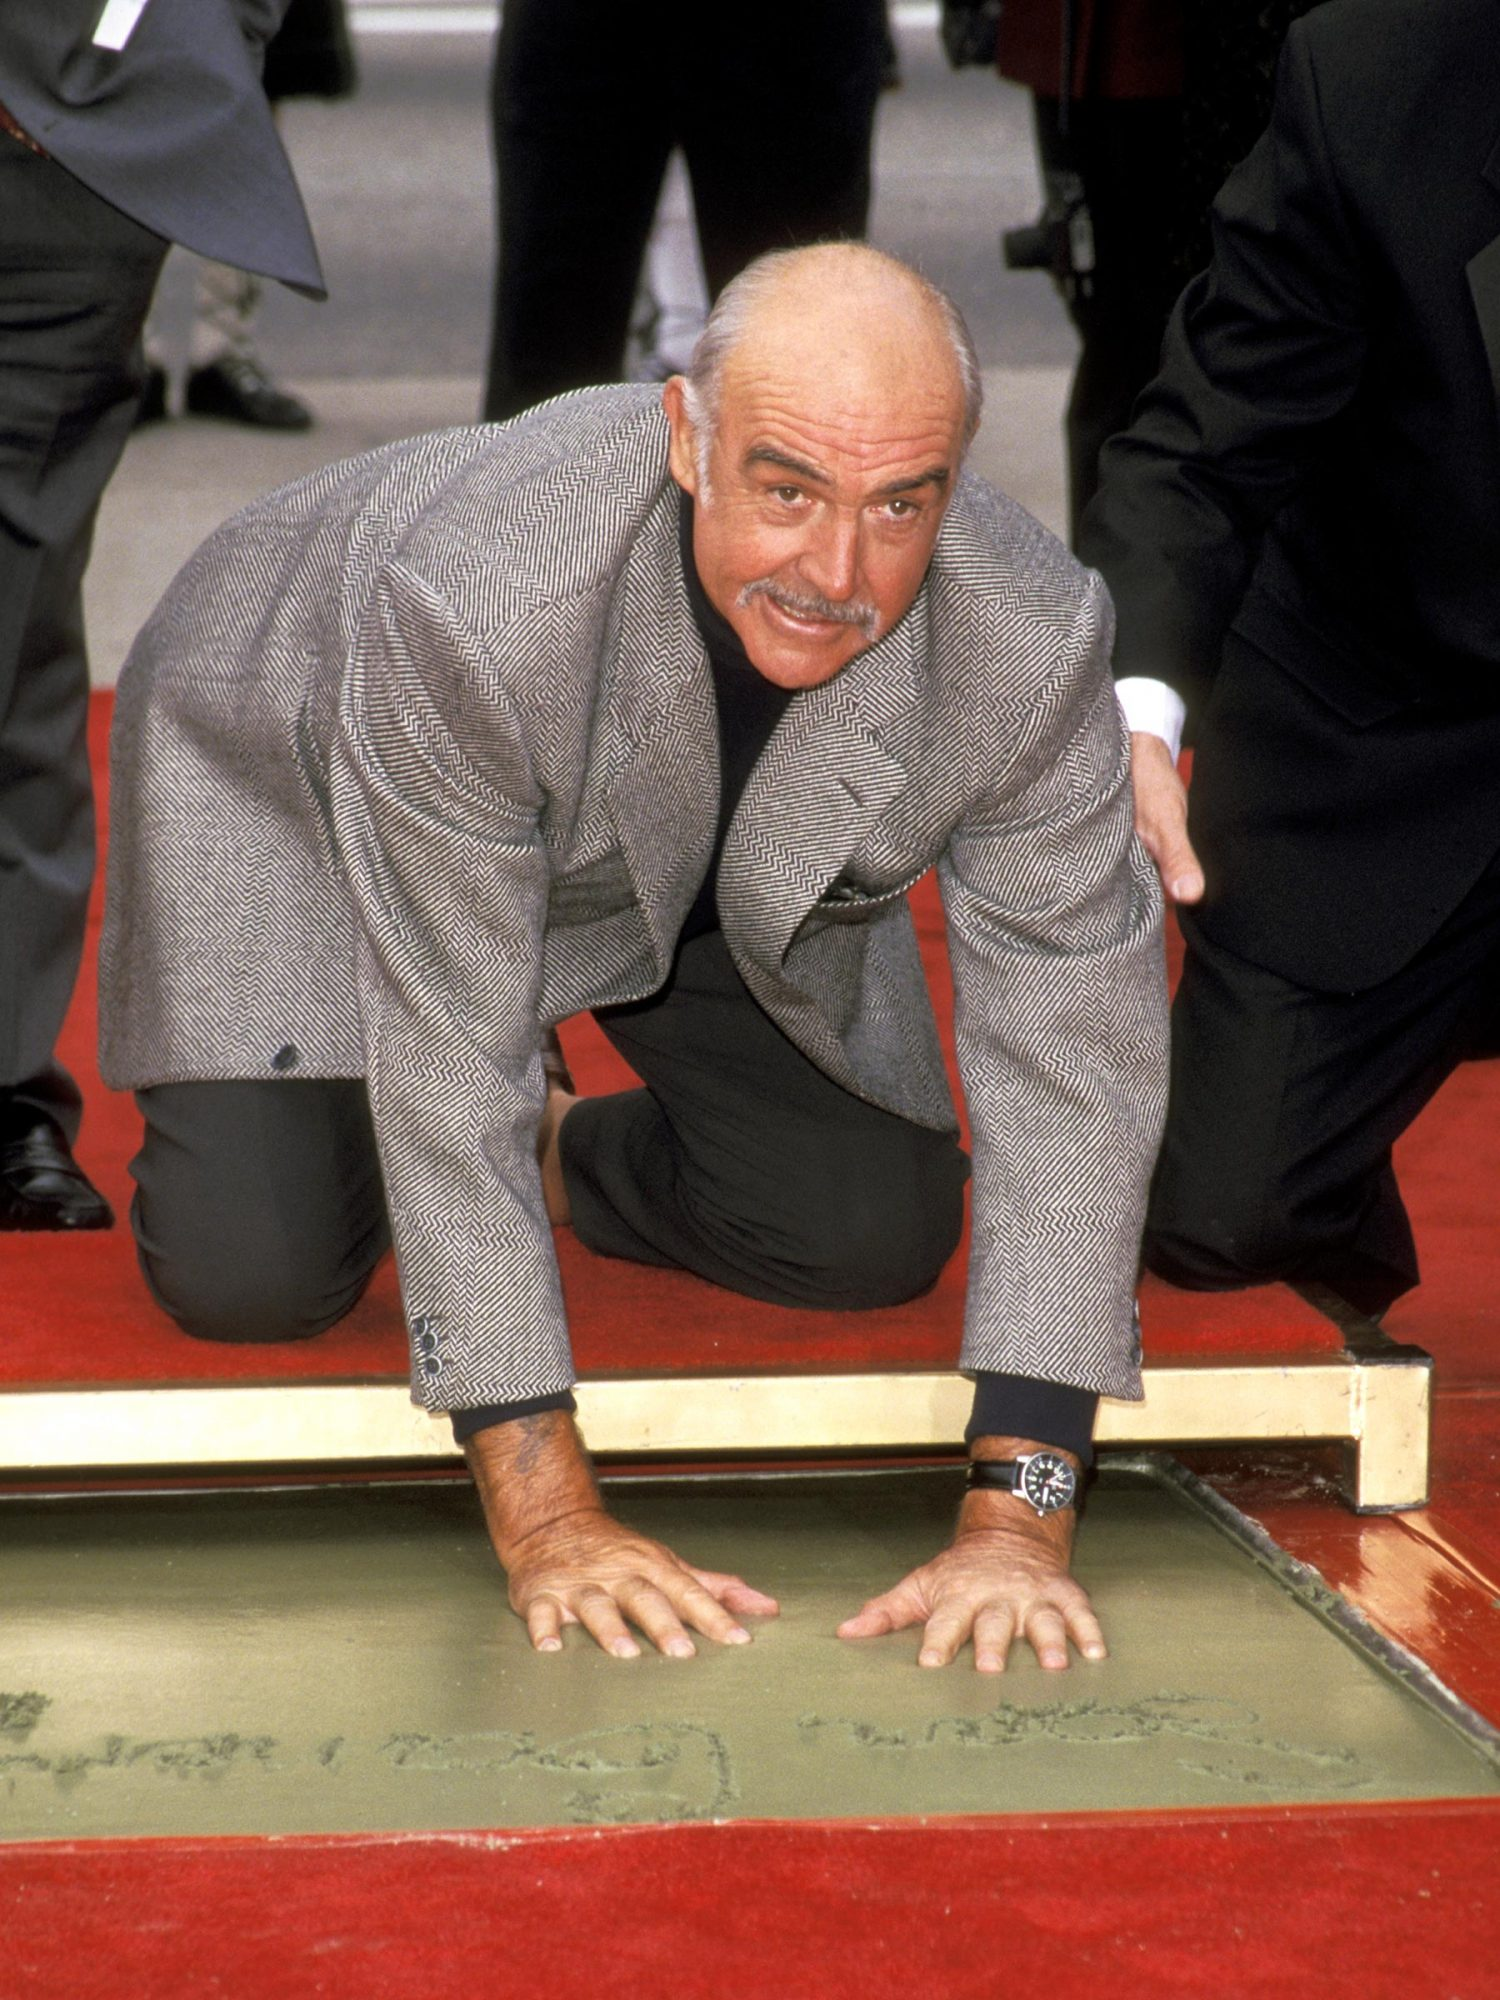 Sean Connery's Hand & Footprints Ceremony